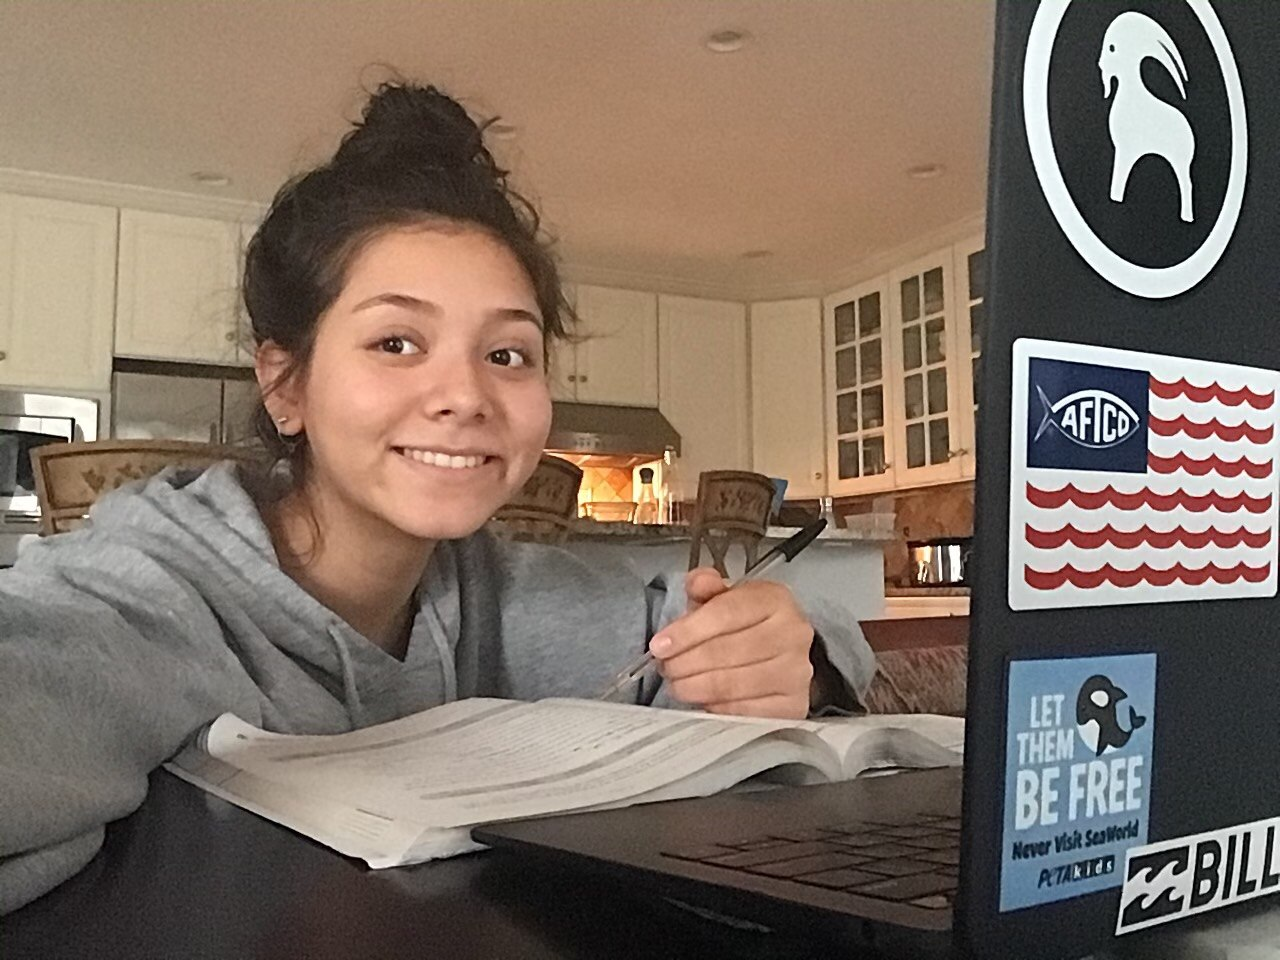 Junior Emily Aumiller smiles for the camera as she works from home.